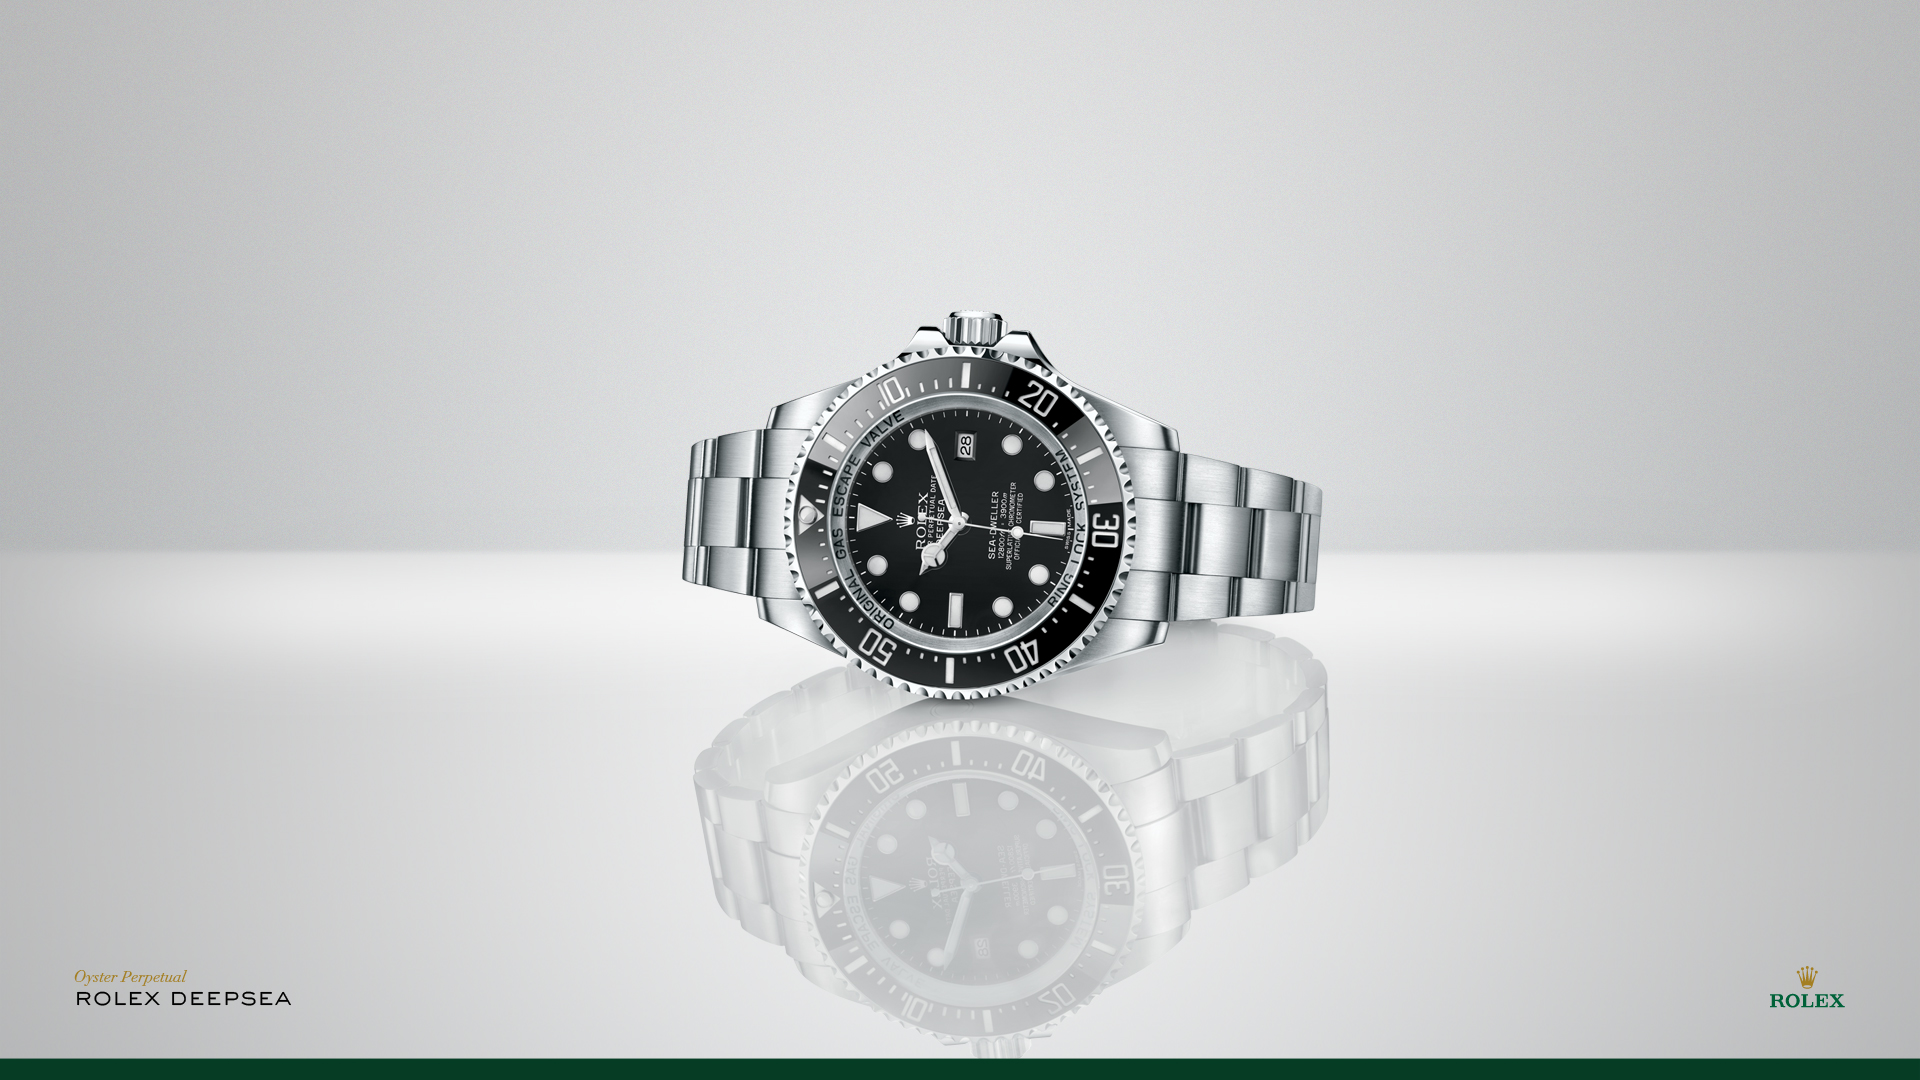 76+] Rolex Wallpaper on WallpaperSafari